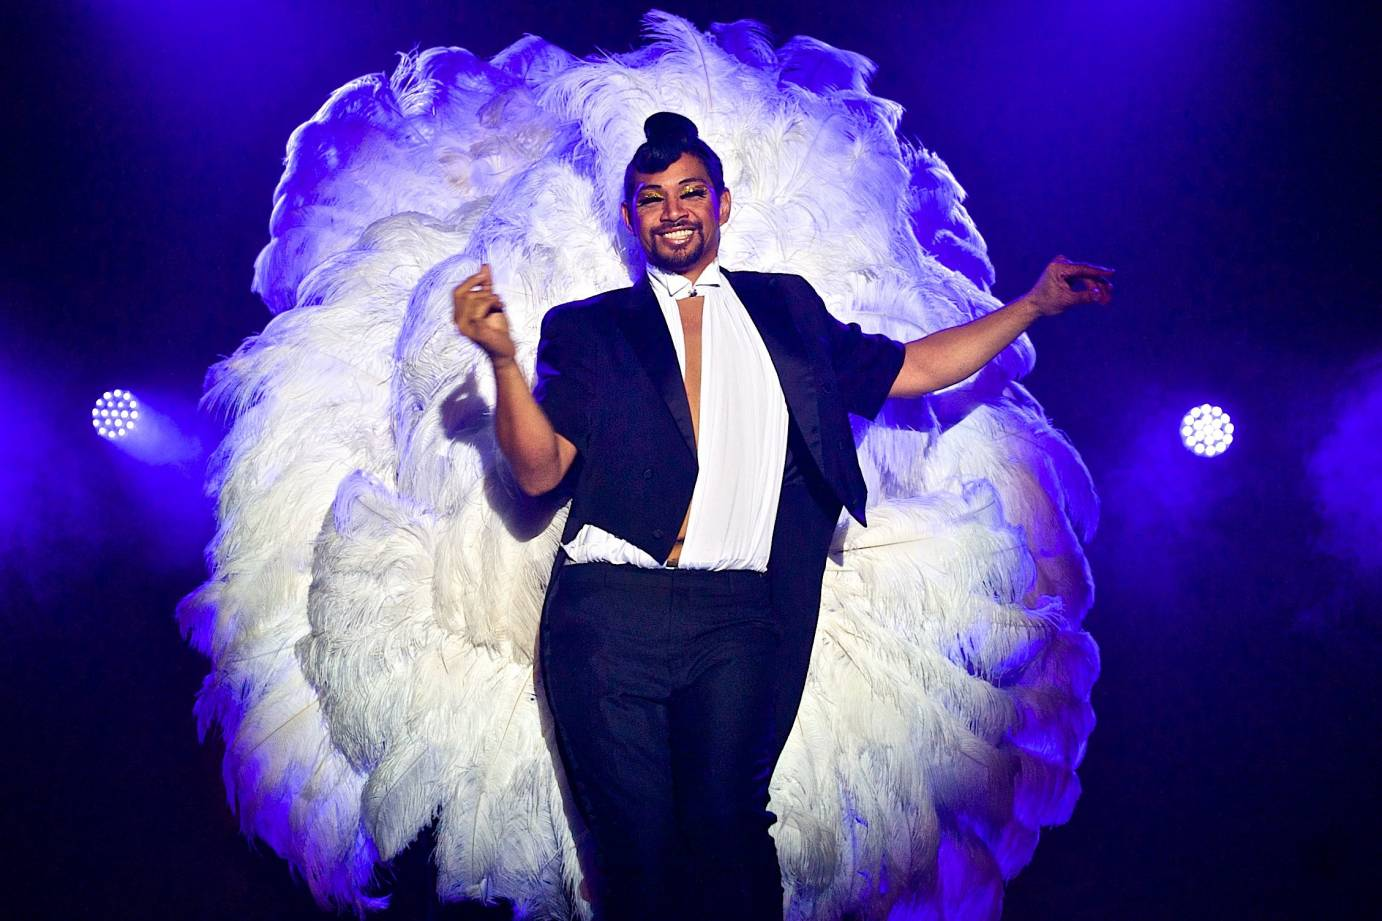 A bearded man in a suit and showgirl feathers